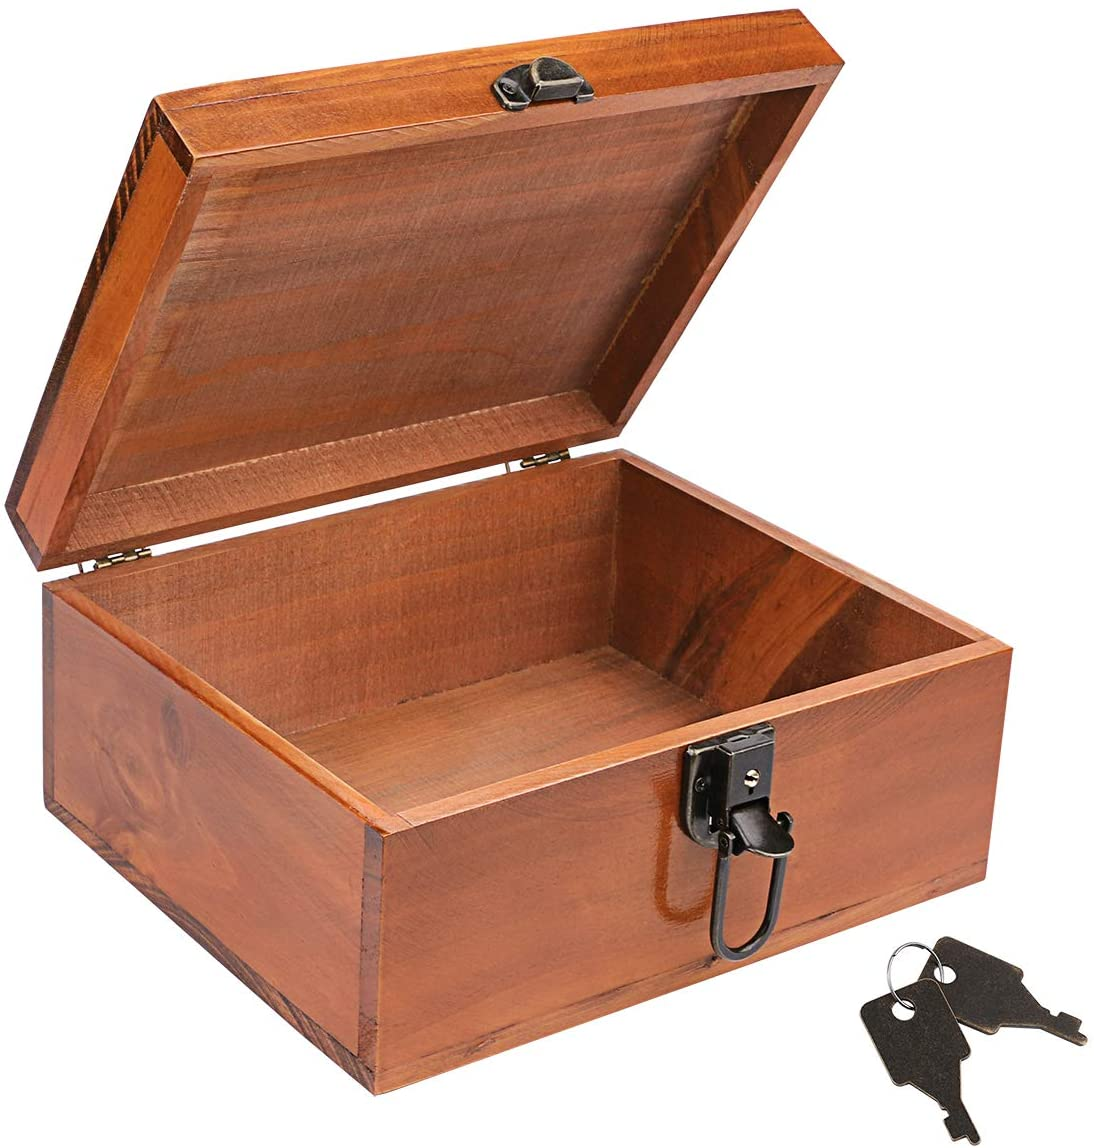 Wooden Keepsake Box, Dedoot Decorative Wooden Box Vintage Handmade Wood Craft Box with Lock and Key for Jewelry Gift Storage Box and Home Decor, Brown, 9.3x7.6x4.5 Inch